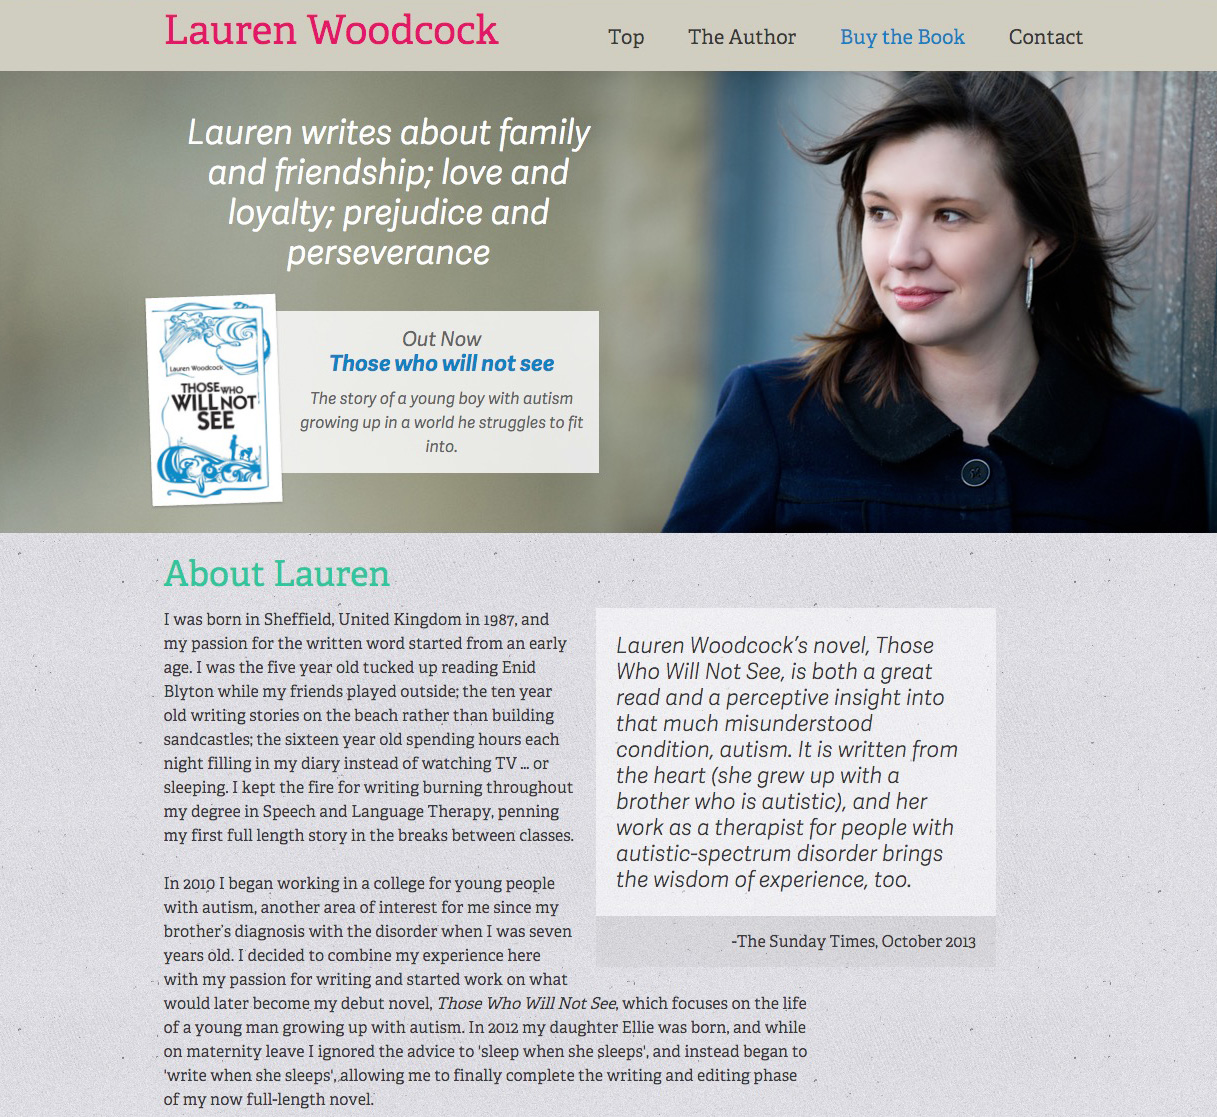 Lauren Woodcock - {project_text_summary}